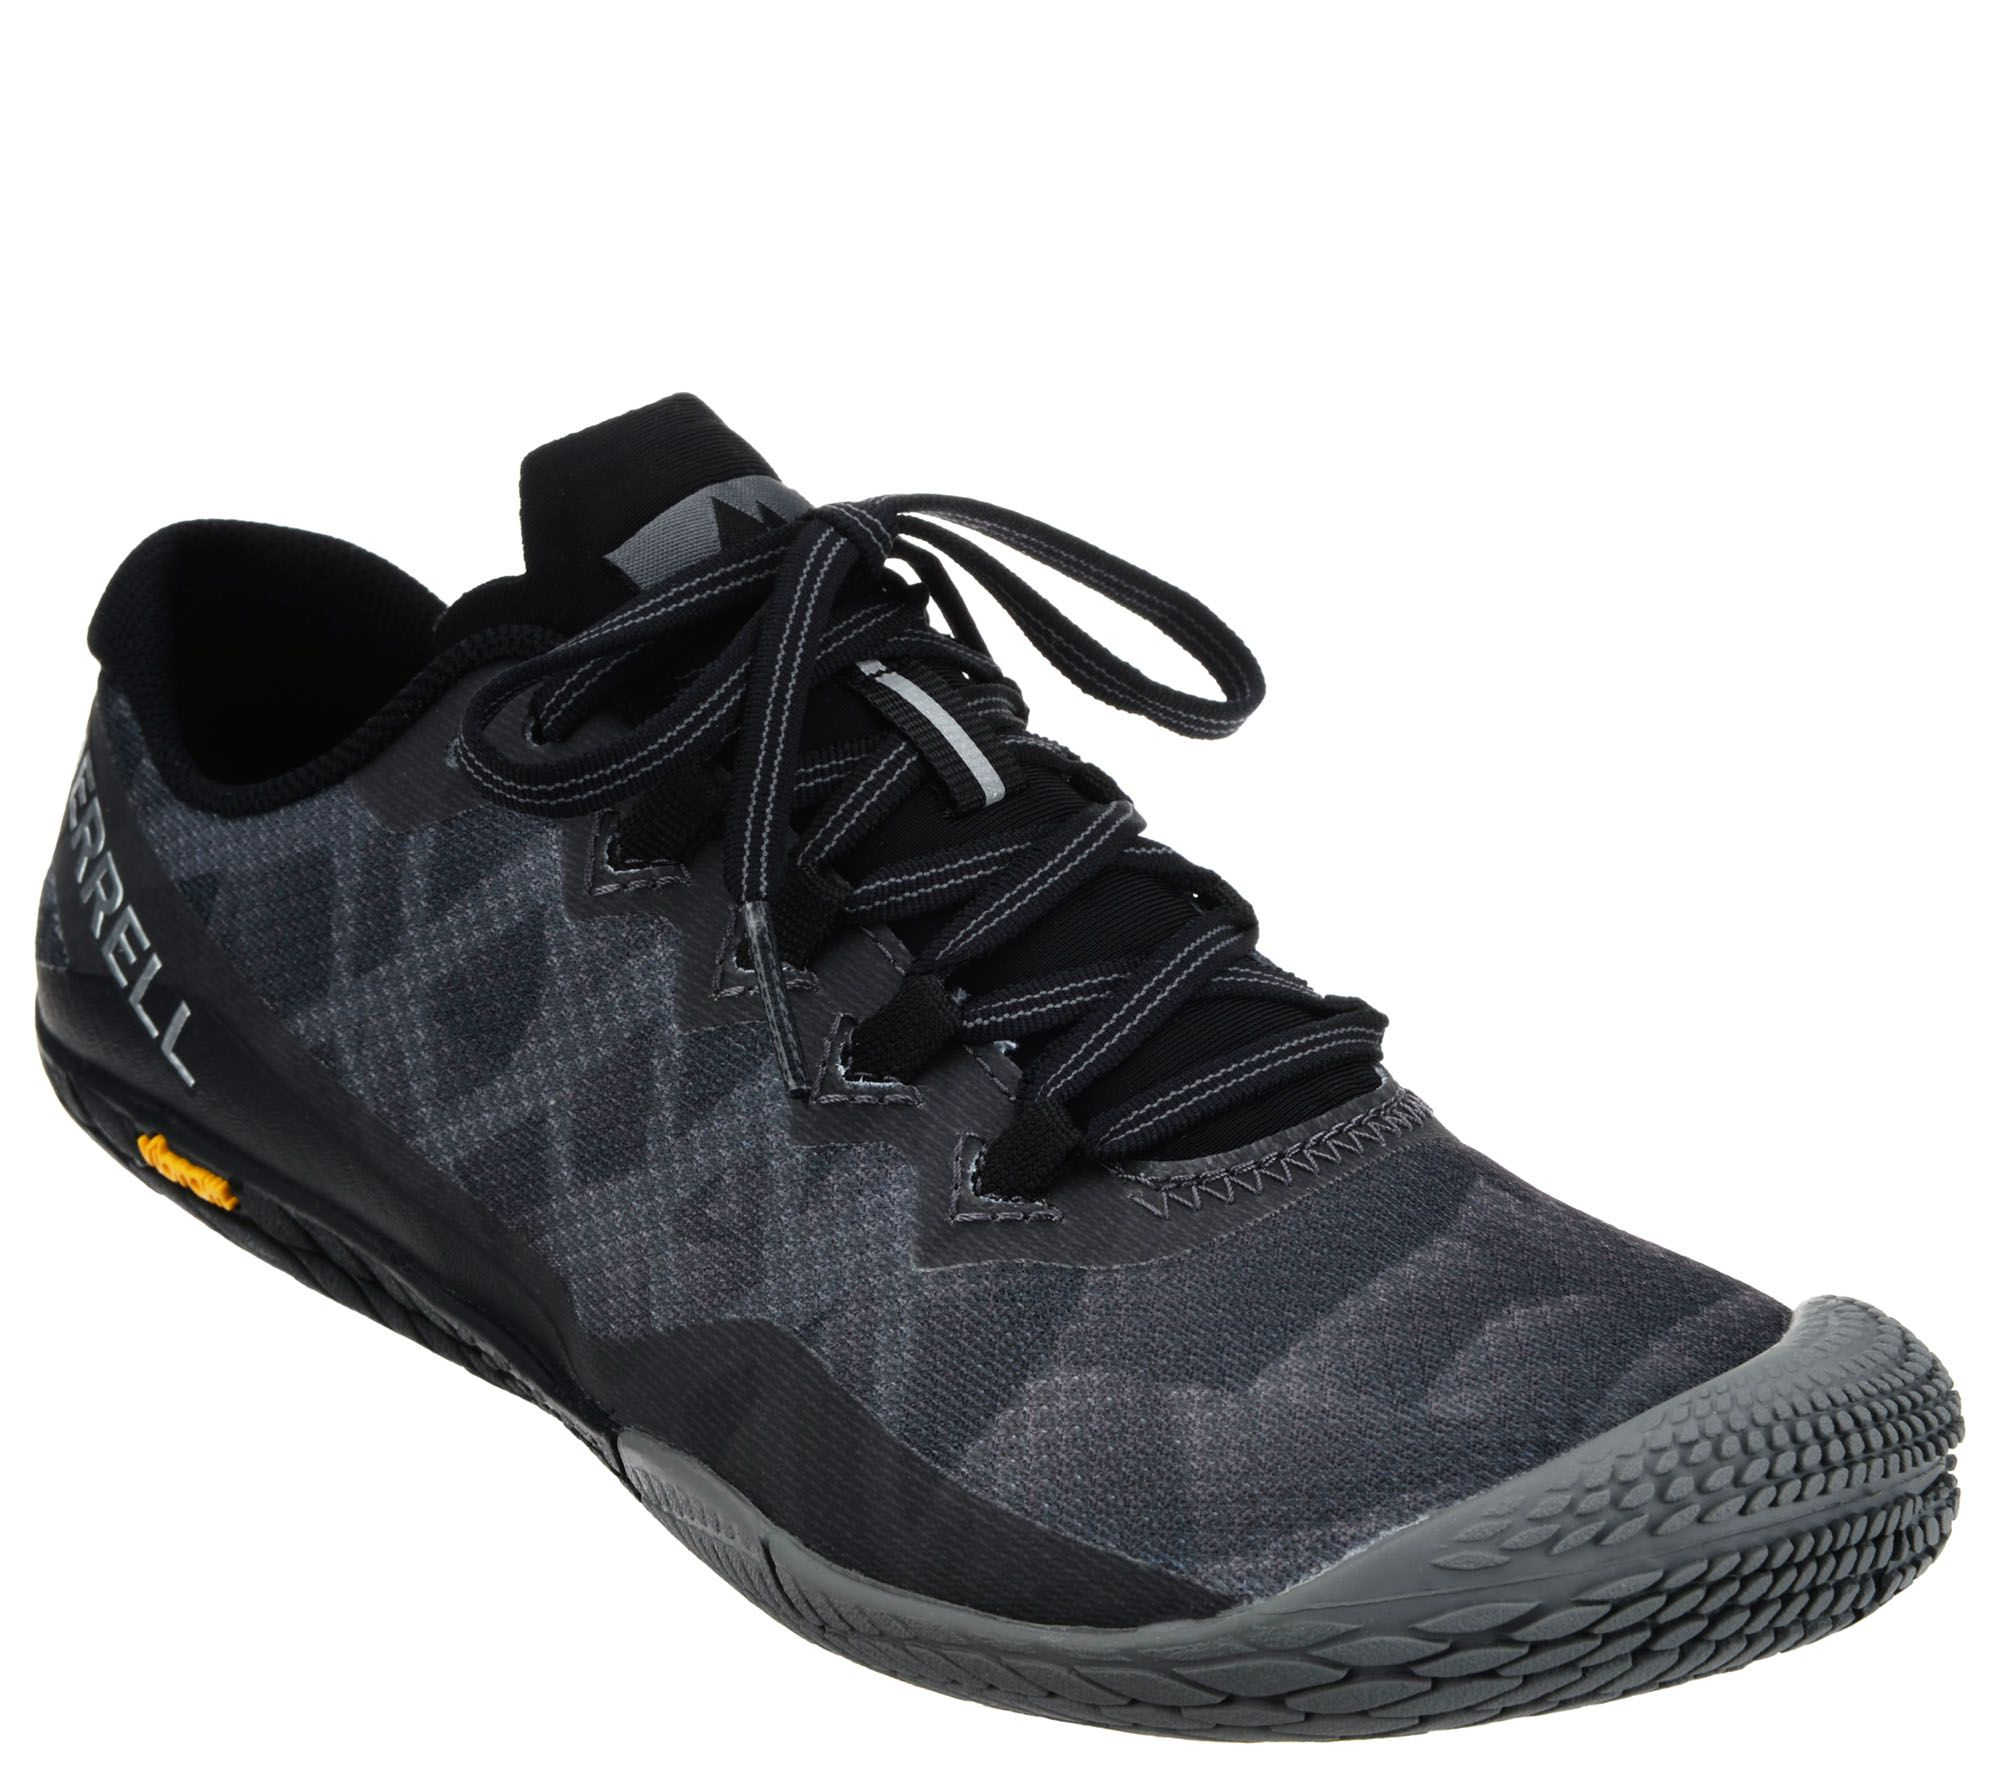 2ff8f19770 Merrell Mesh Lace-up Sneakers - Vapor Glove 3 - Page 1 — QVC.com